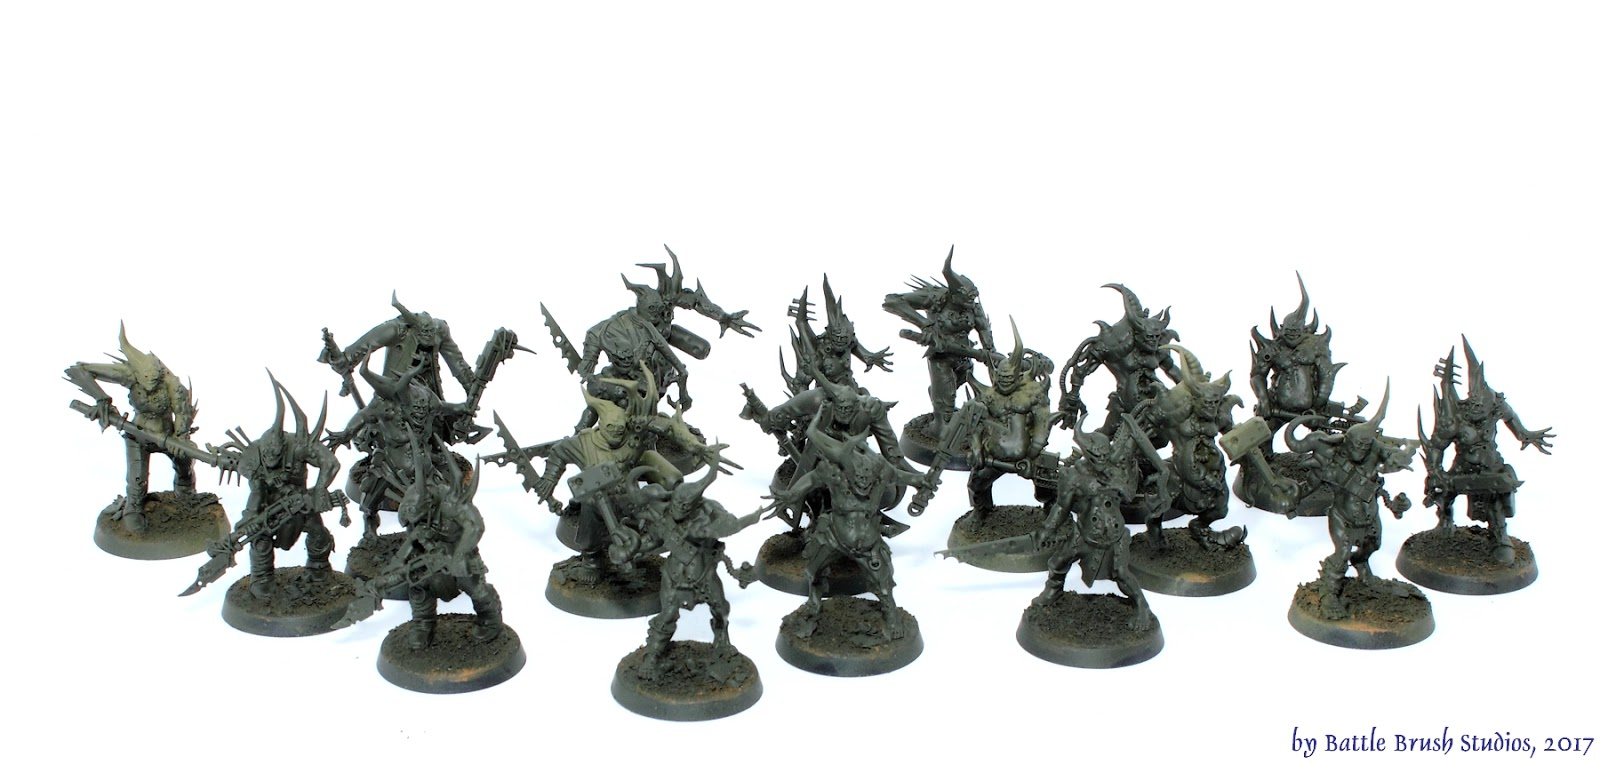 Review: Dark Imperium Miniatures by Sigur: Nurgle Death